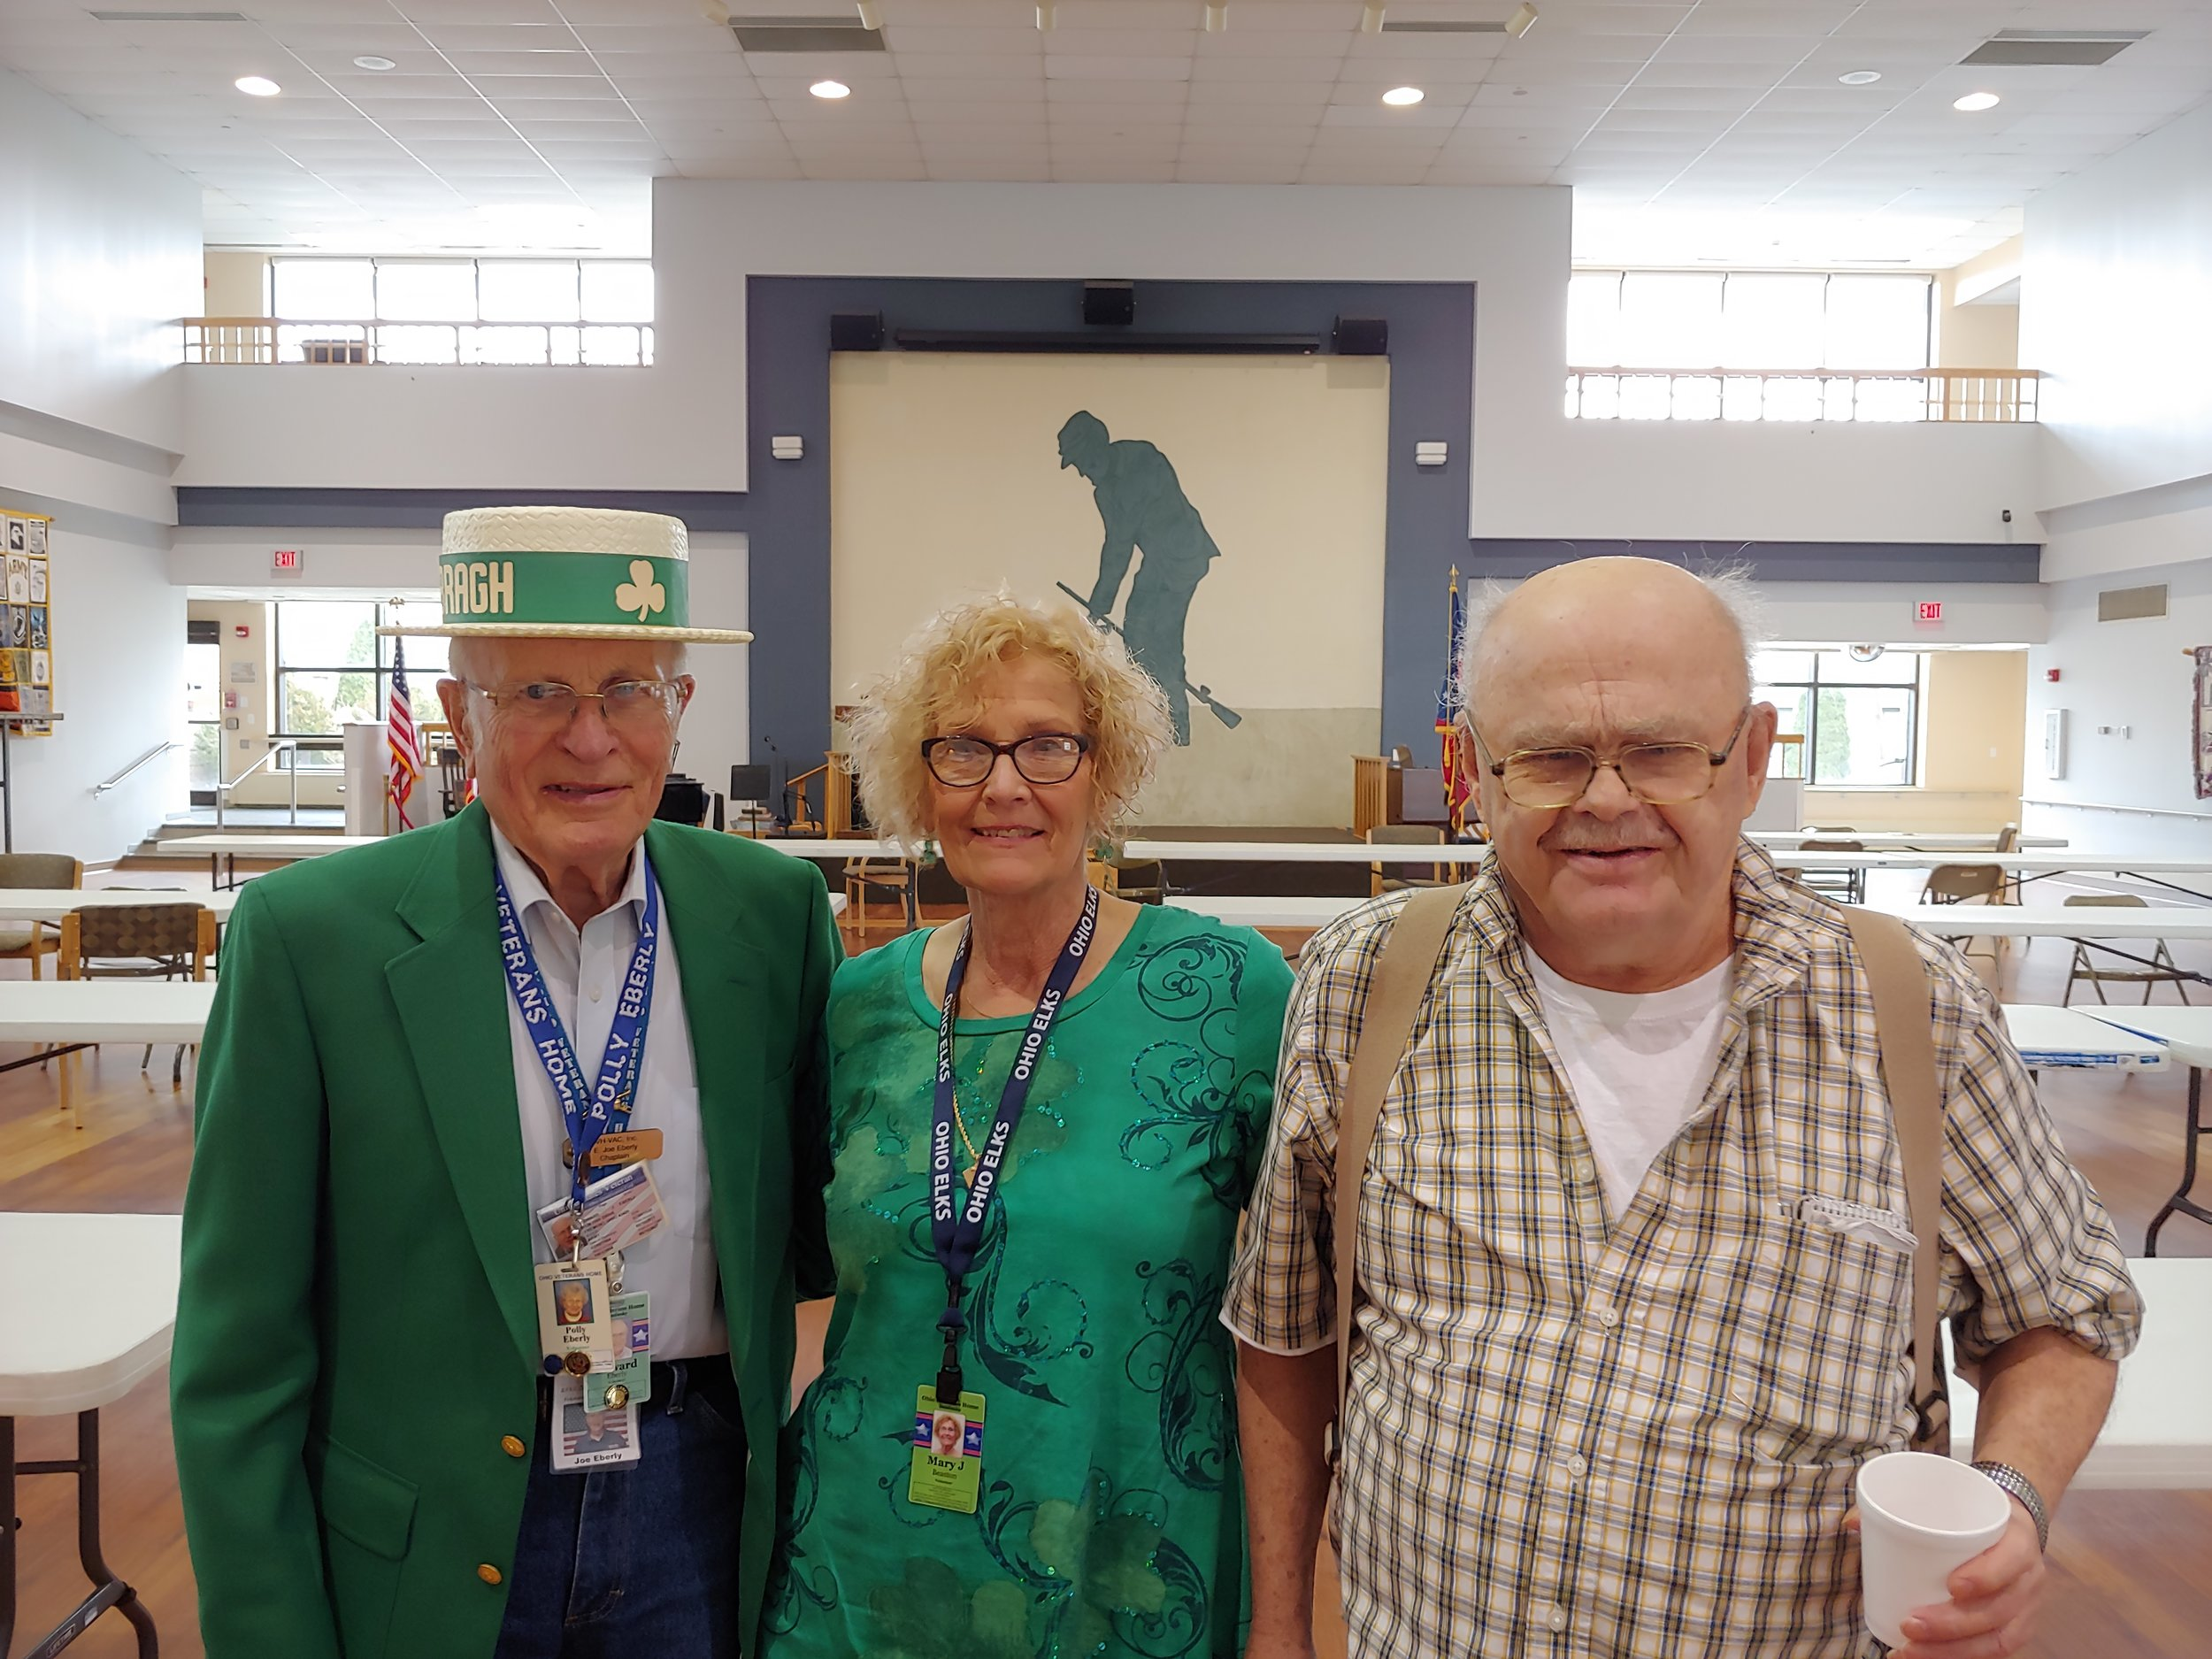 Here's a picture of PER Joe being recognized to the room filled of Veterans at the annual St Patty's Day Bingo party at the Ohio Veterans Home sponsored by the VAC/Ohio Elks.